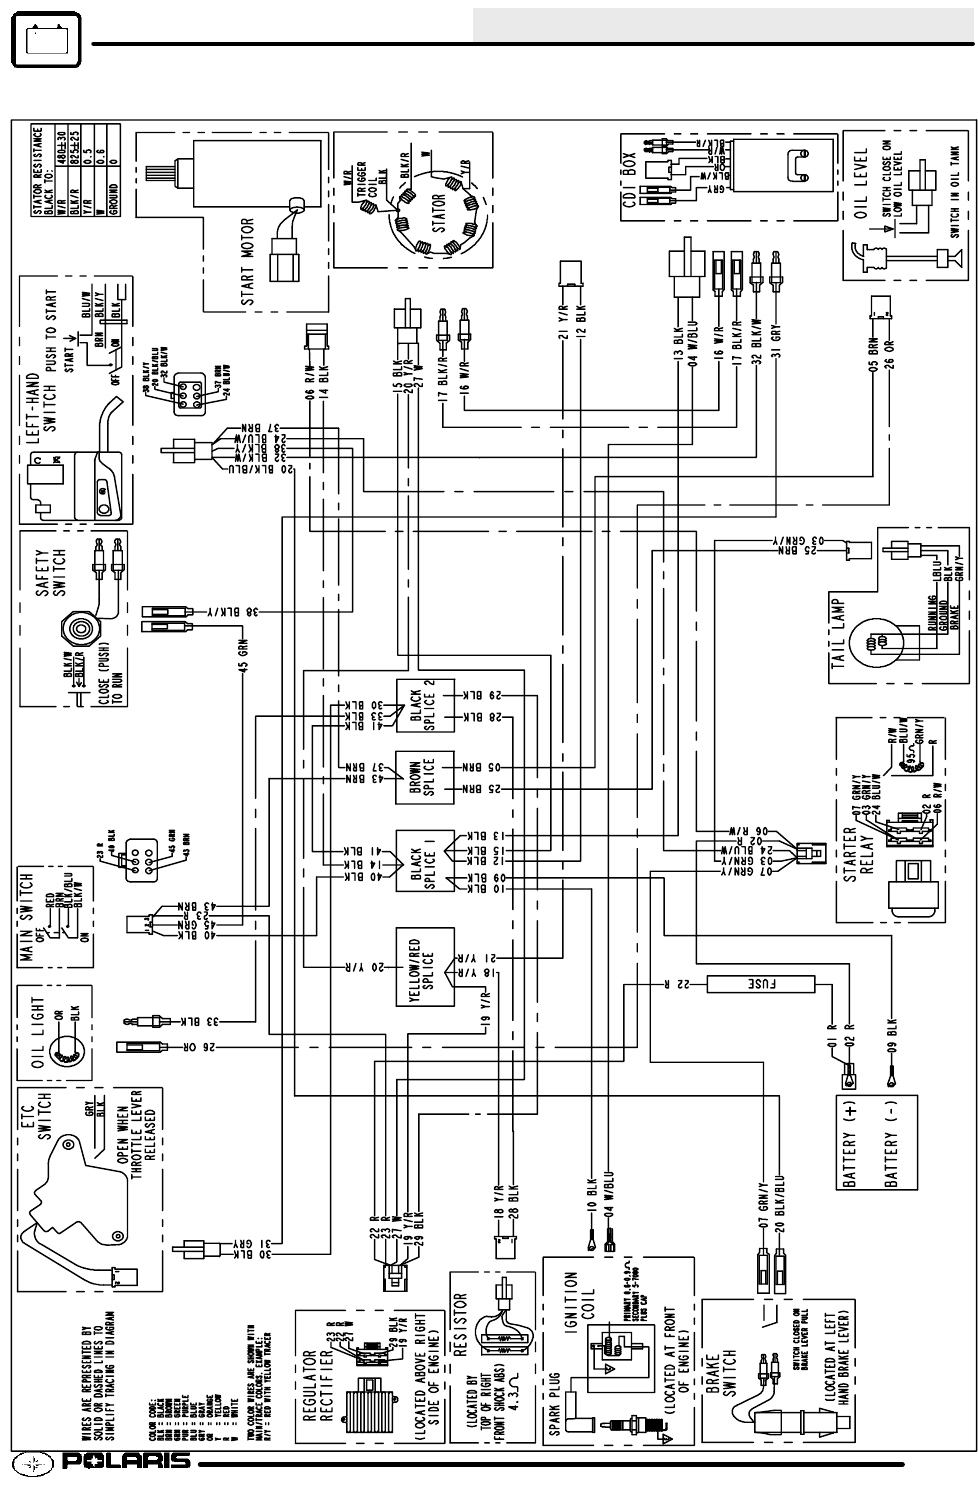 2005 polaris sportsman 800 wiring diagram